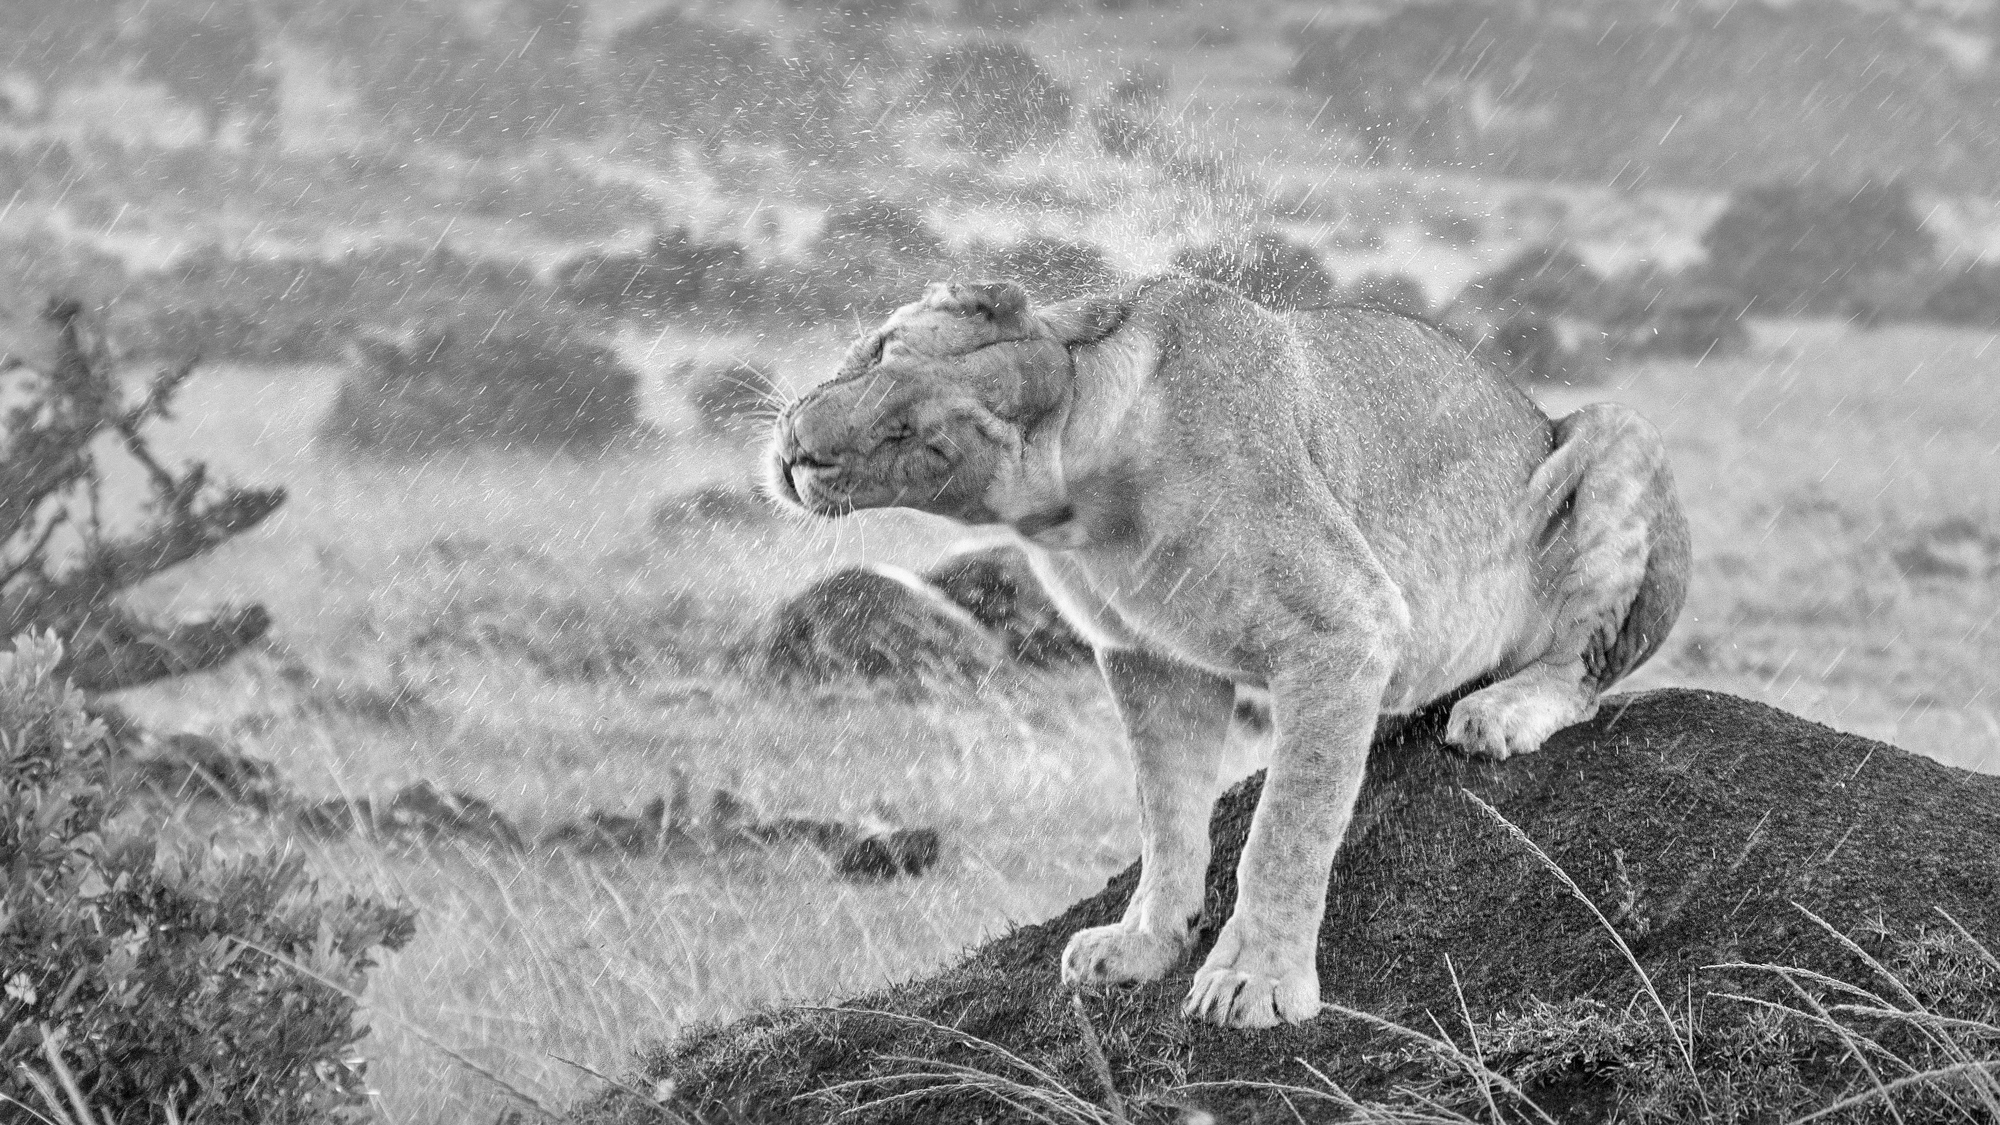 A lioness shaking of the rain.